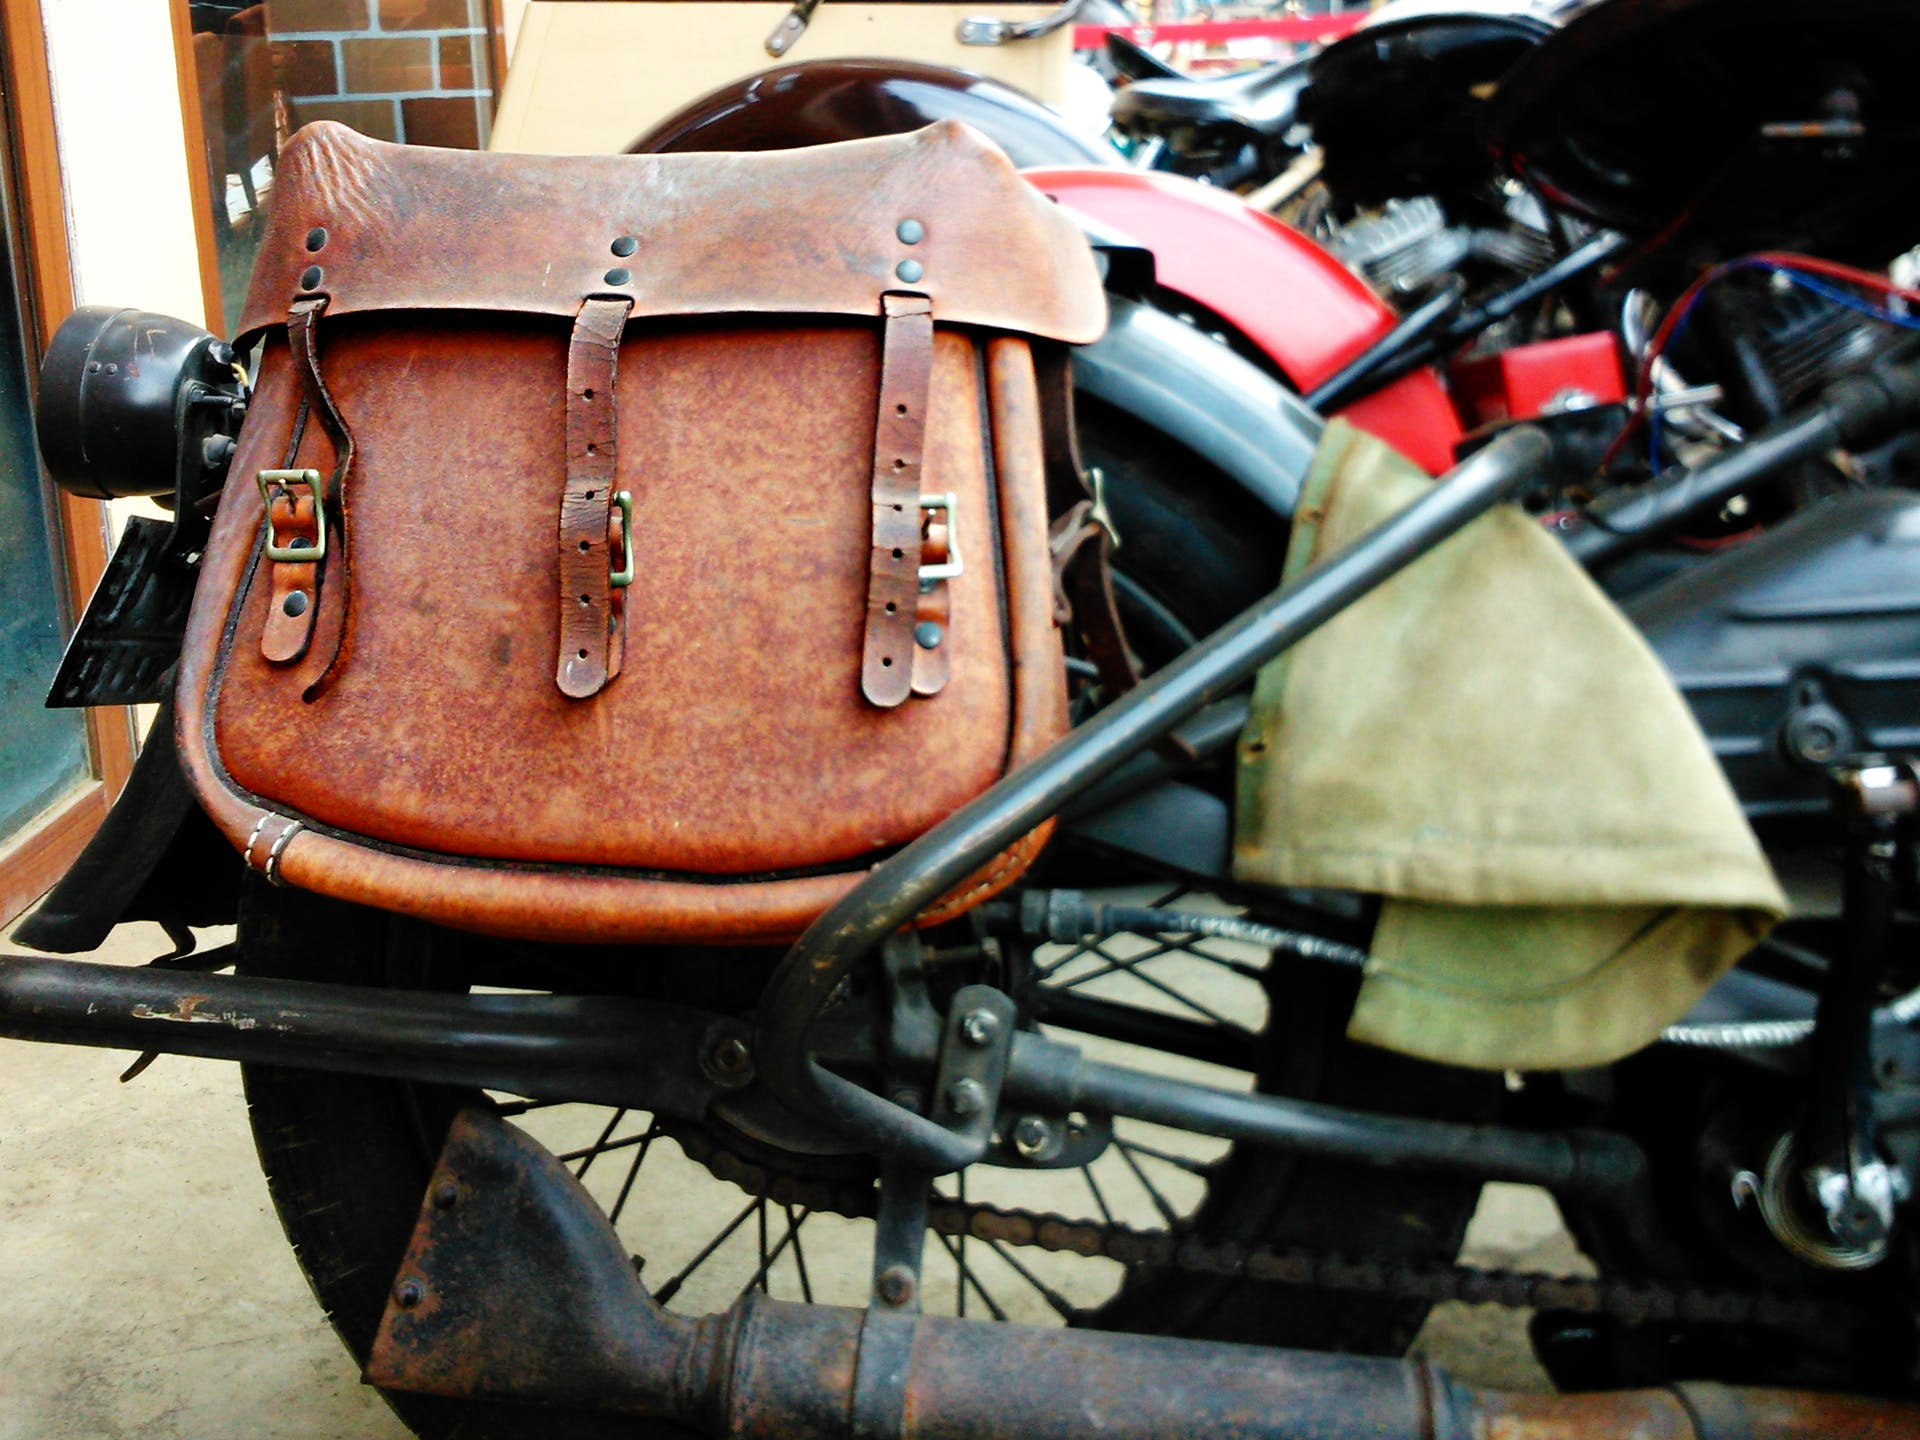 vehicle retro motorbike leather road motorcycle leather bag brown strap accessories